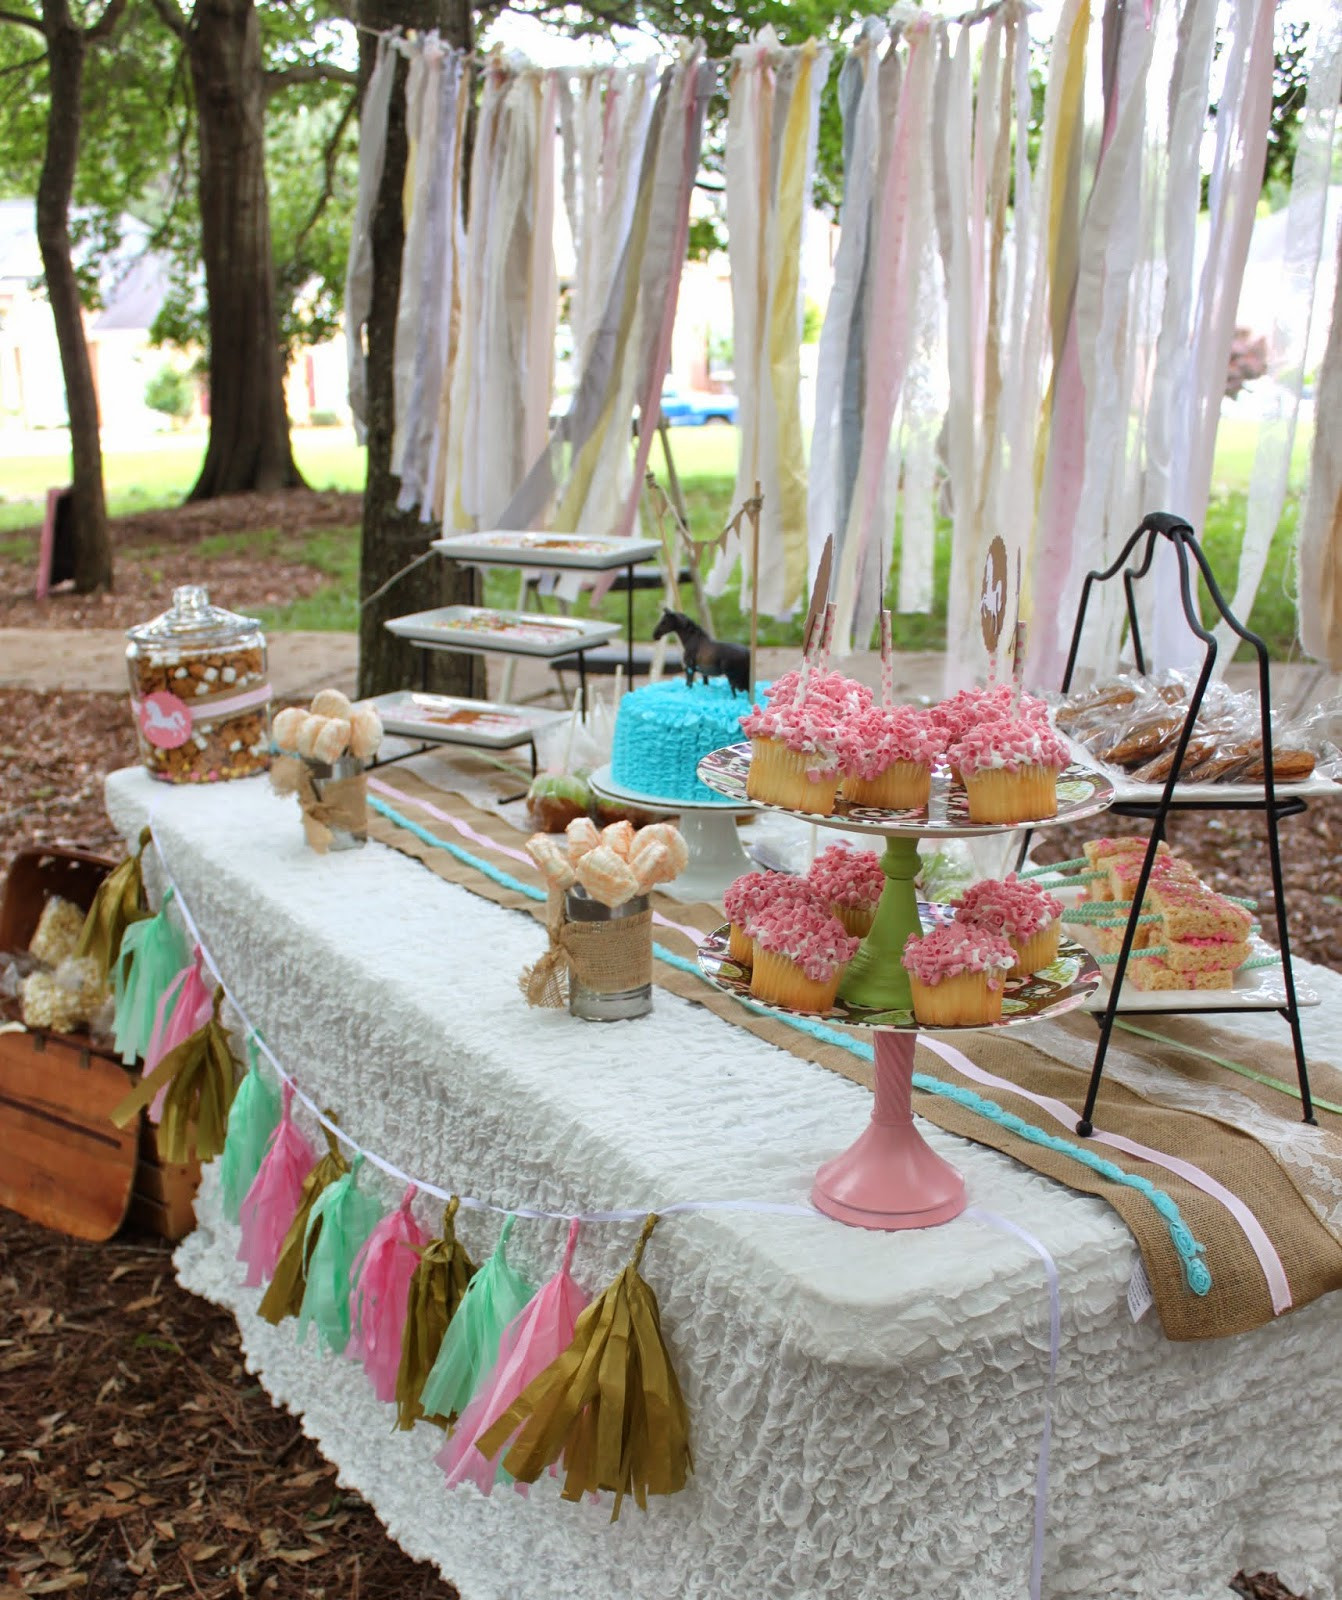 Best ideas about Horse Decorations For Birthday Party . Save or Pin So Cute Parties Tween Vintage Horse Party Now.